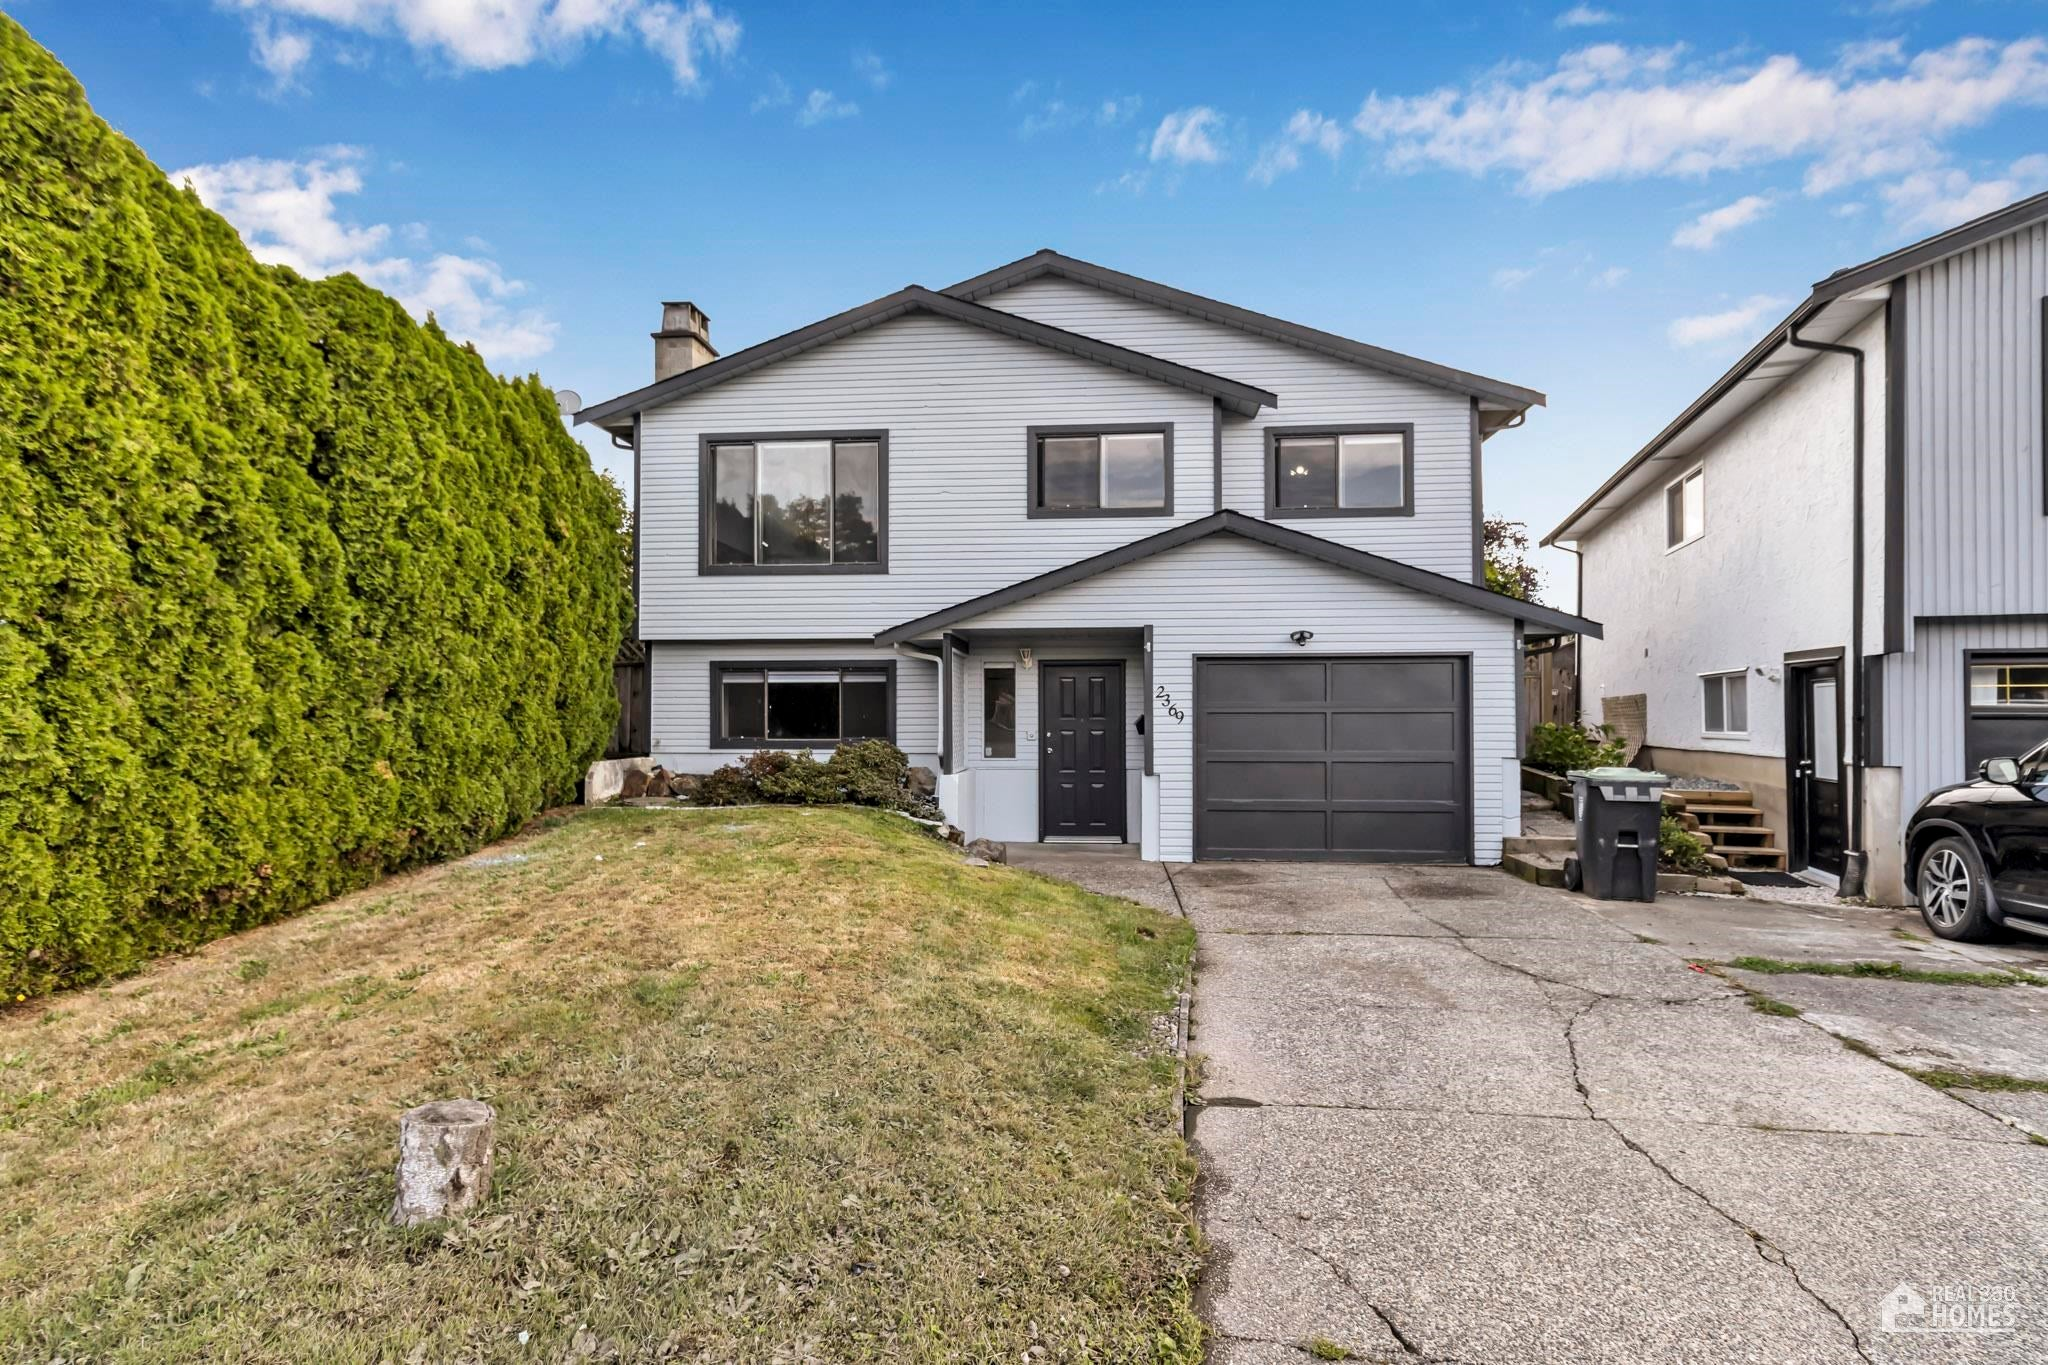 2369 WAKEFIELD COURT - Willoughby Heights House/Single Family for sale, 4 Bedrooms (R2619635) - #1